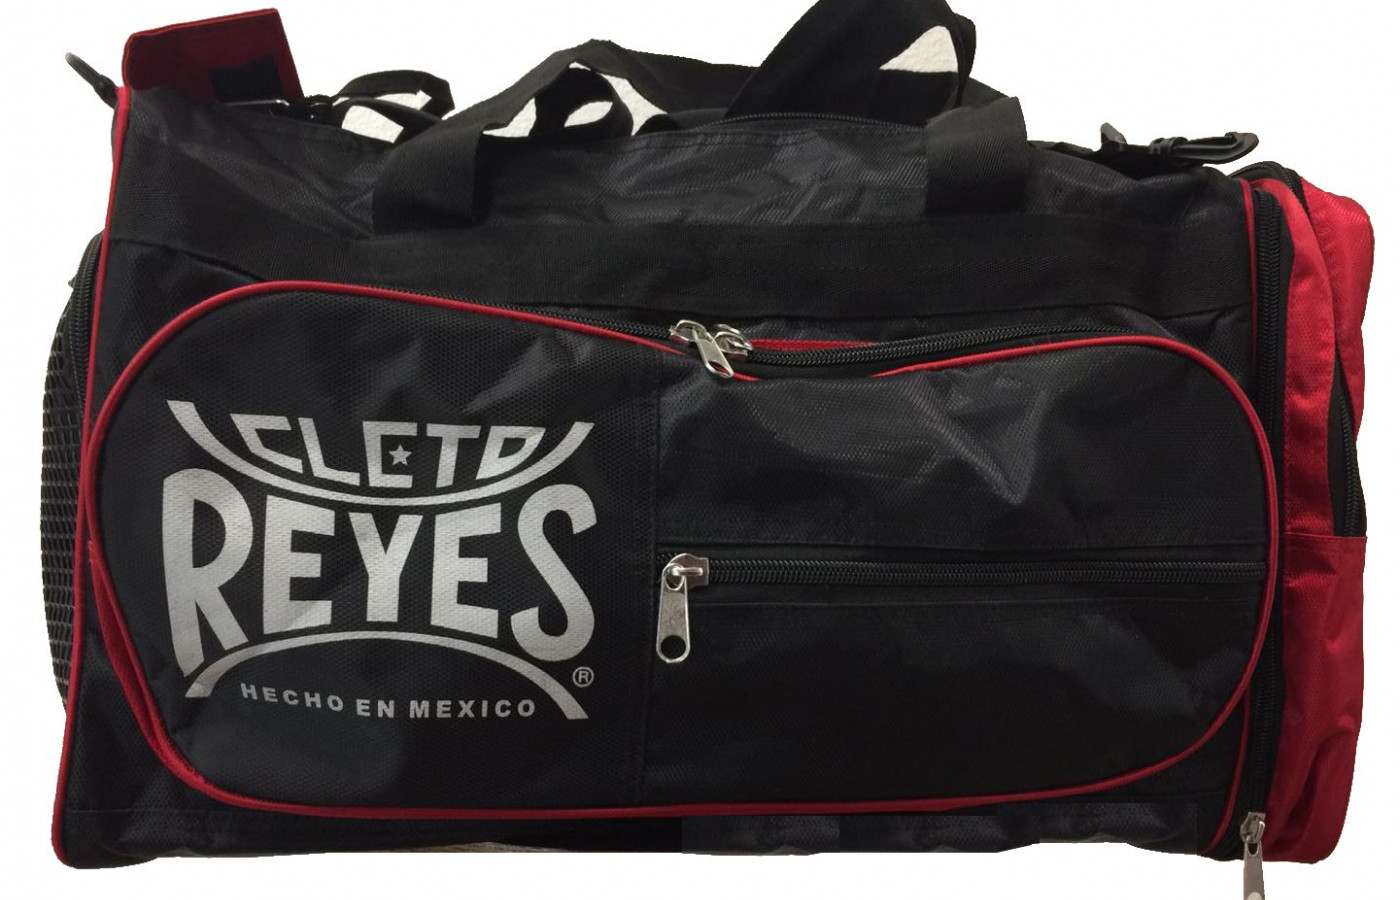 cleto reyes gym bag front (2)